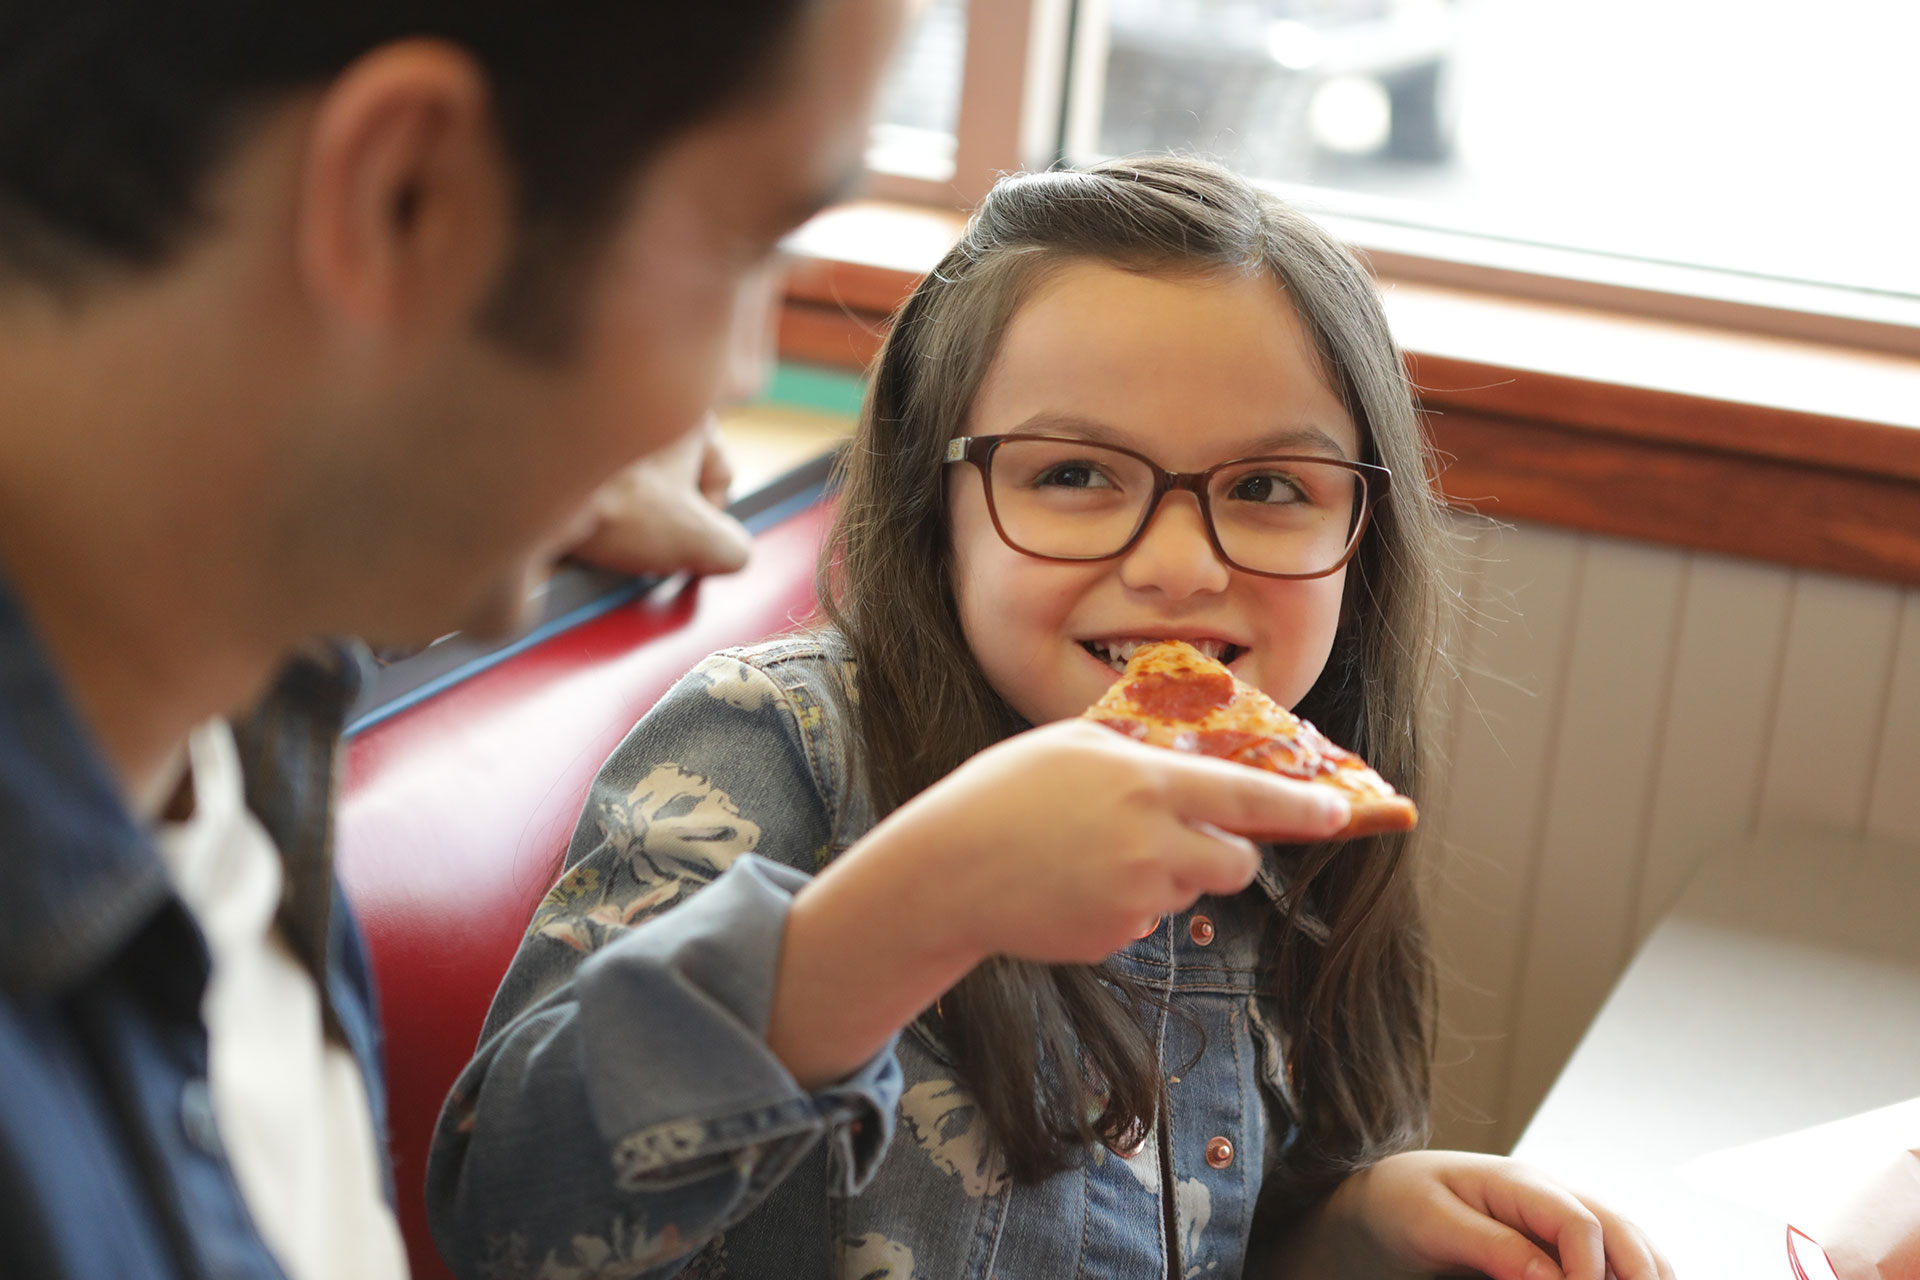 Girl smiling while eating pizza